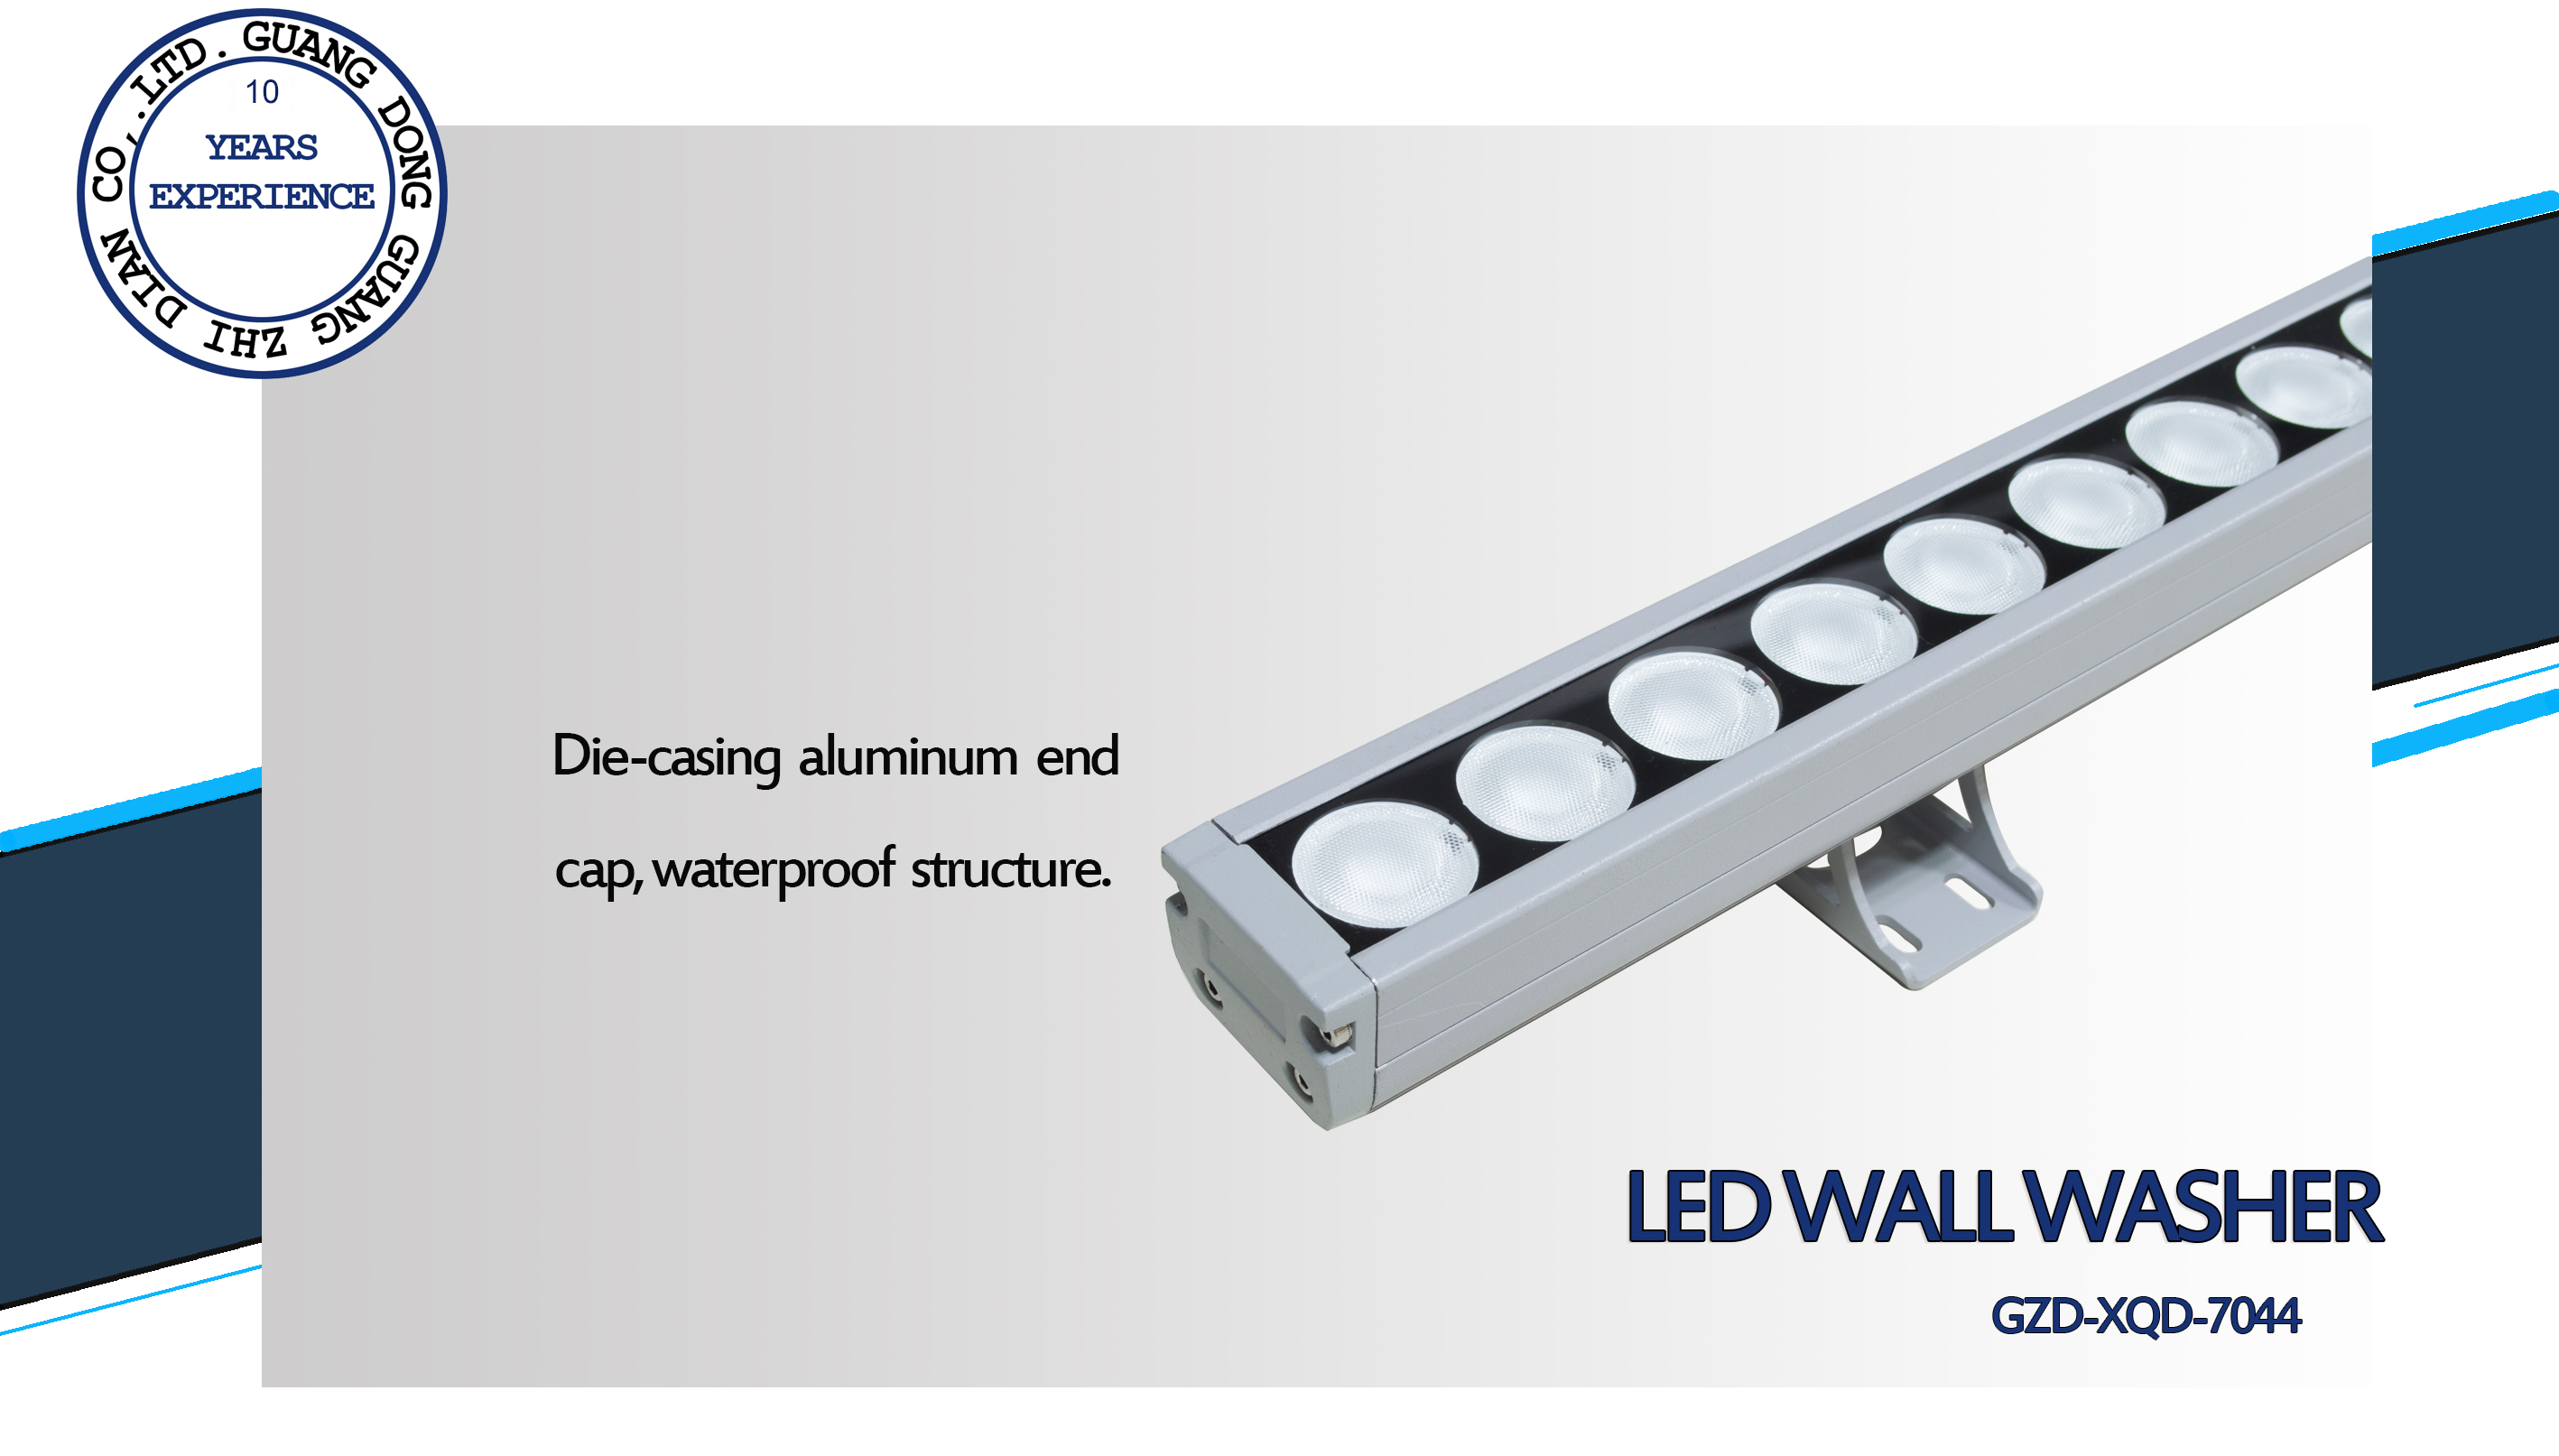 2 led wall washer-